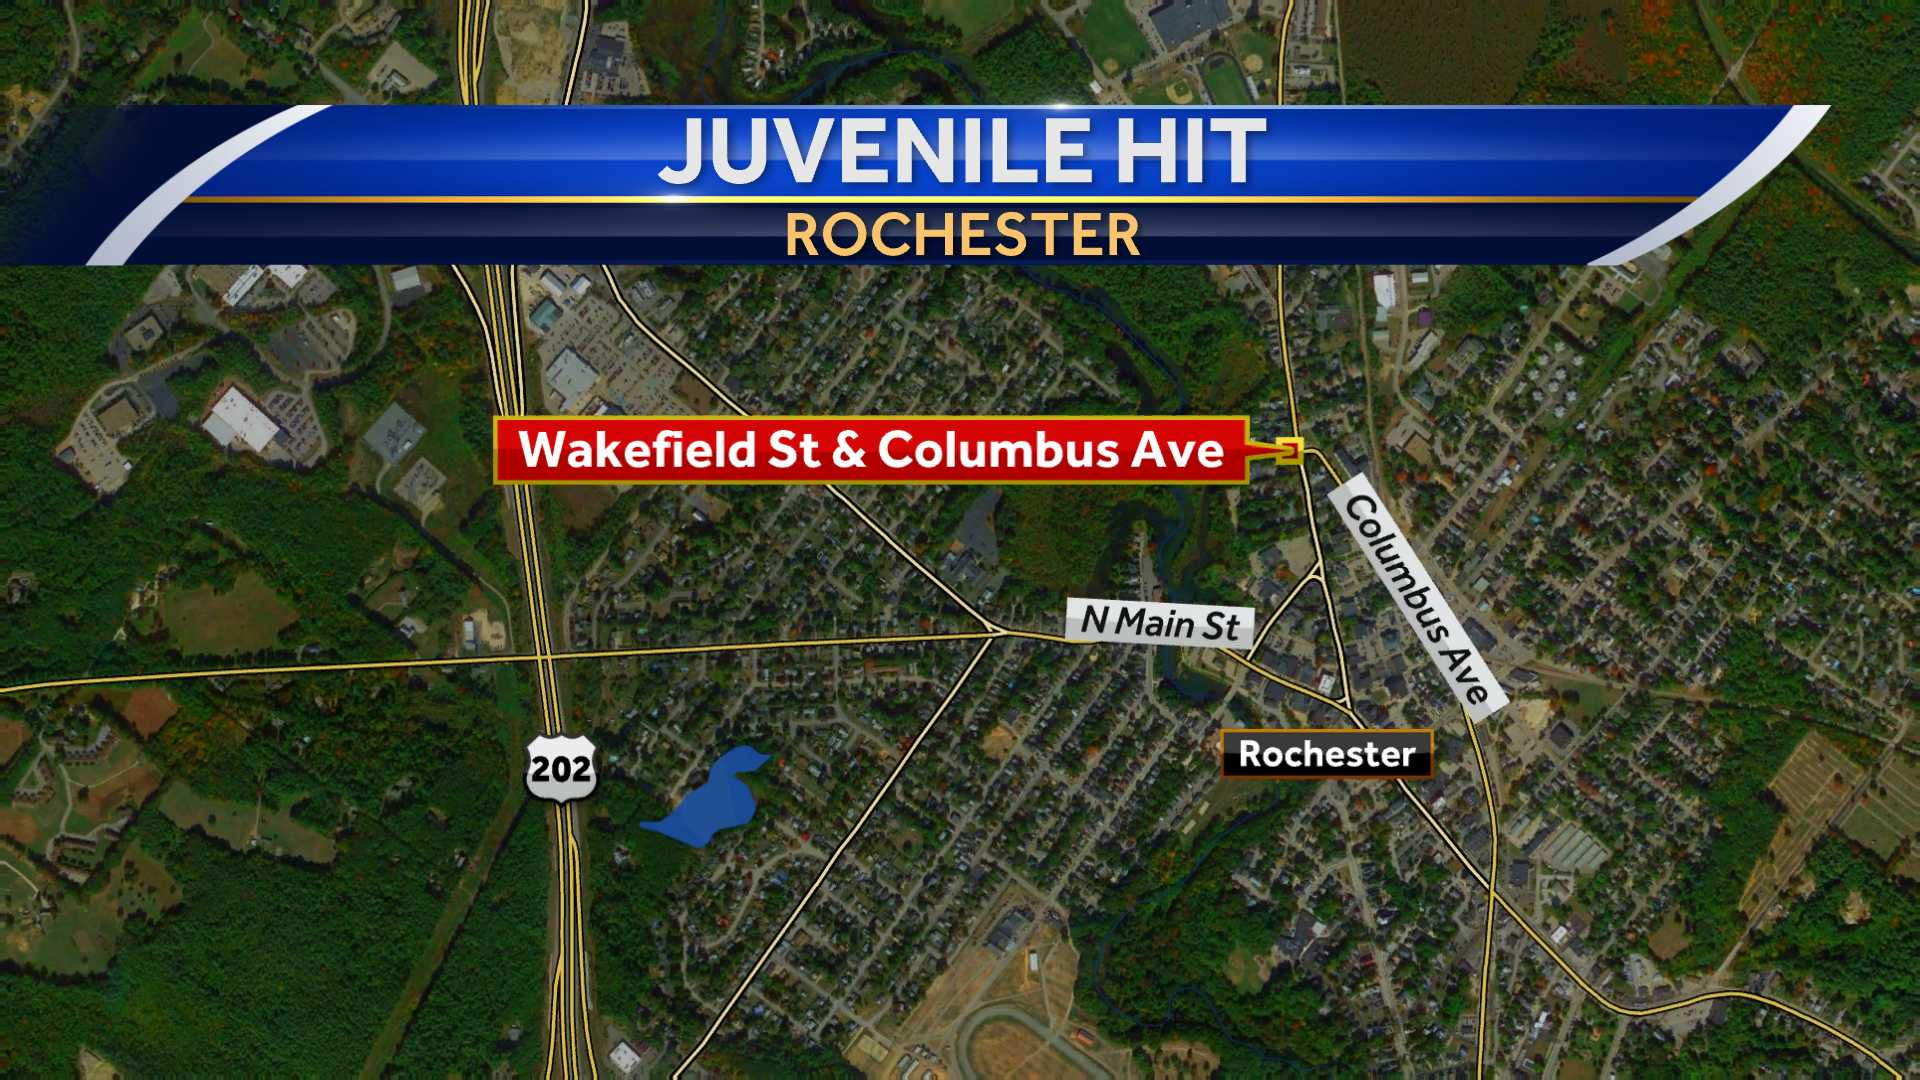 Juvenile hit by SUV in Rochester